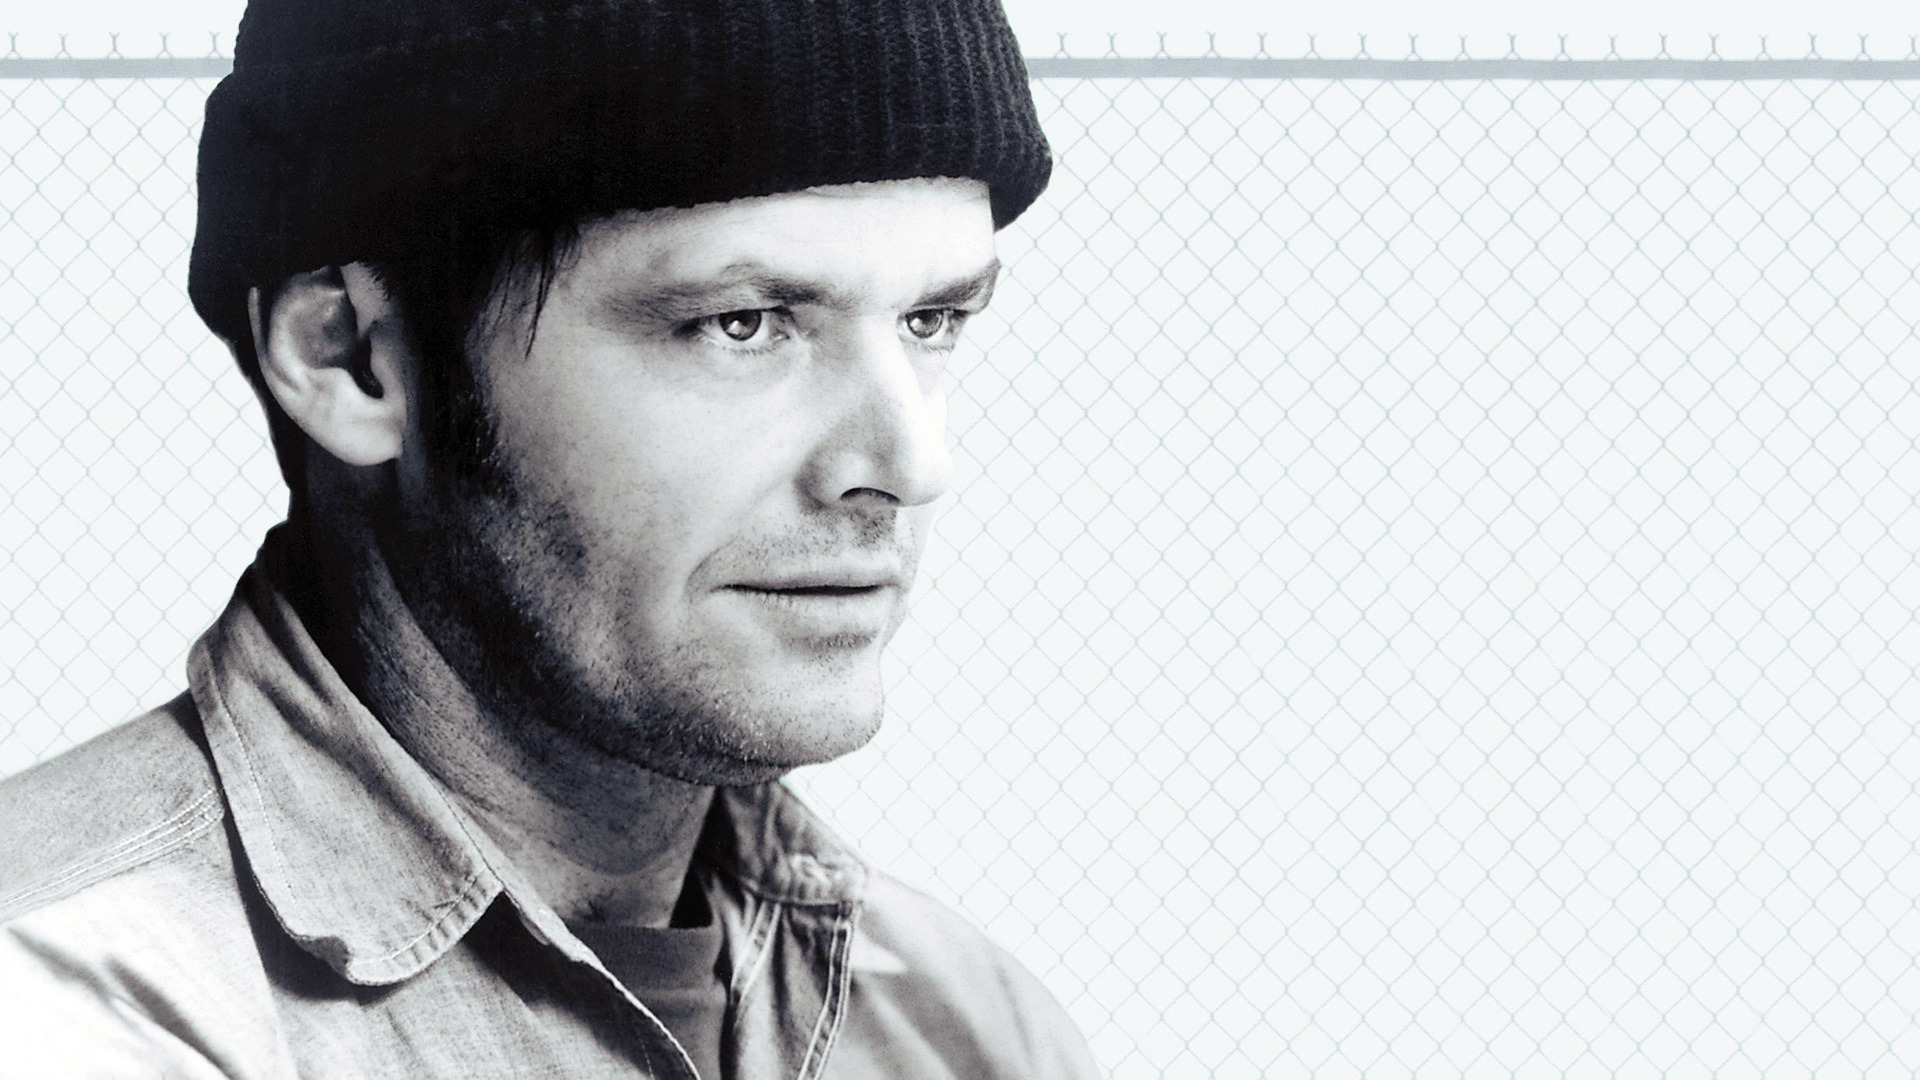 One flew over the cuckoo's nest 1975 full movie – full length in english – full hd 1080P – @YouTube